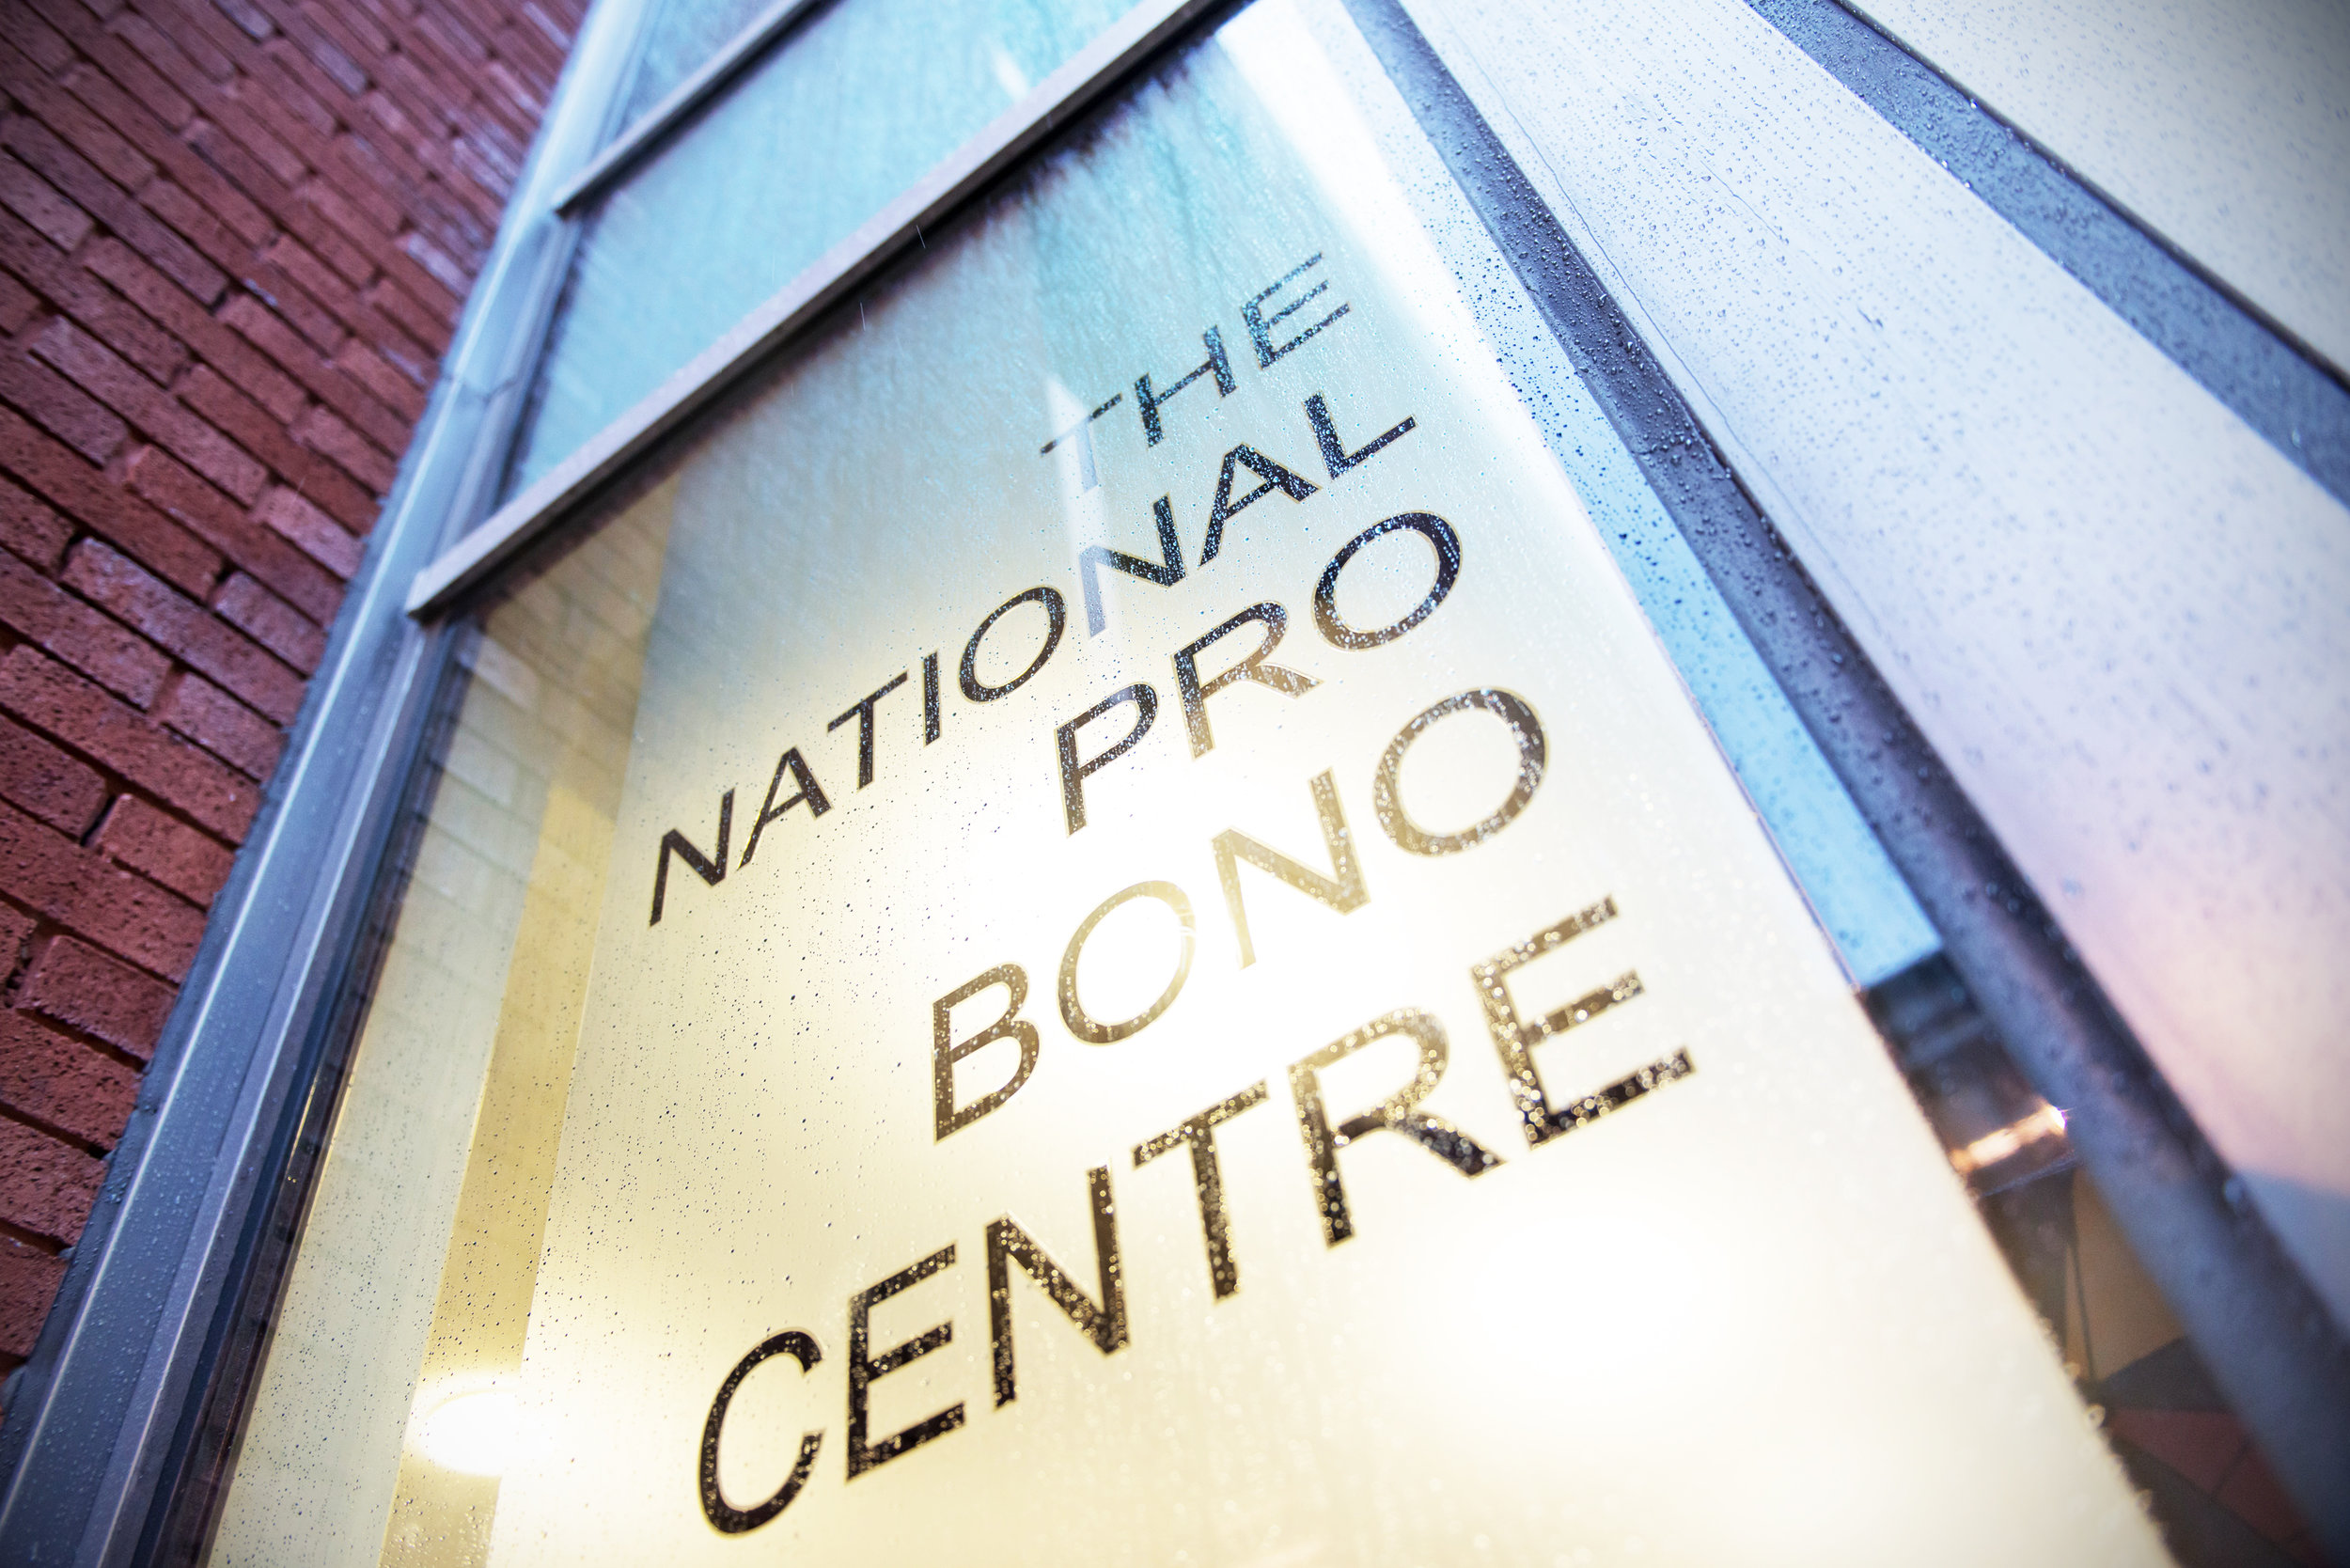 Pro-Bono - To demonstrate the varied and important work barristers do on a pro bono basis, in 2016 the Bar Council developed the Bar Pro Bono Hub in conjunction with the Bar Pro Bono Board.Continue reading . . .